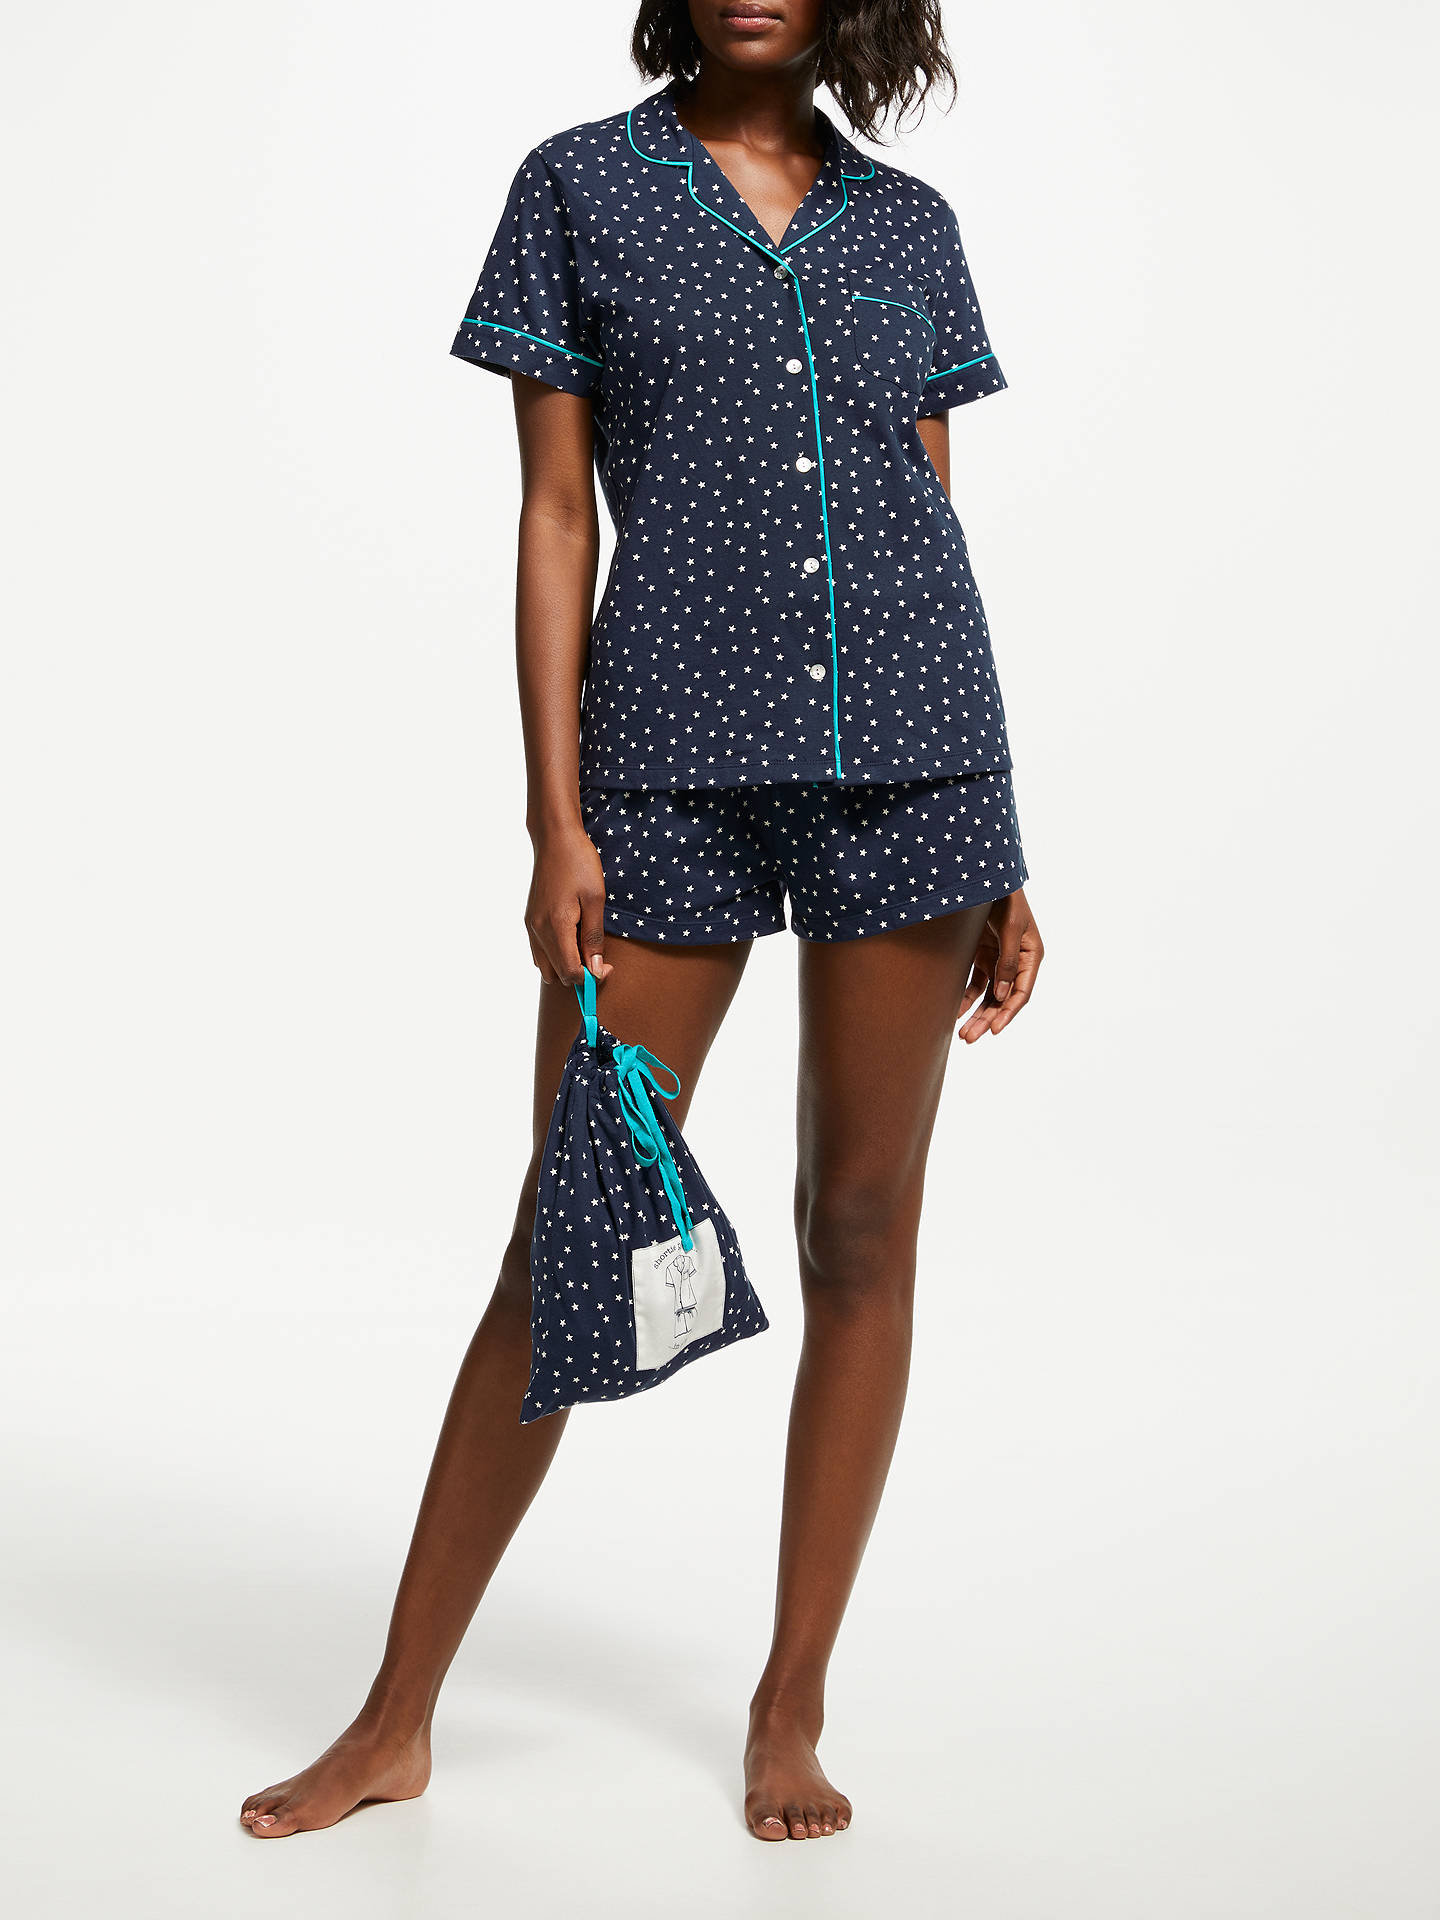 Buy John Lewis & Partners Etienne Star Print Shorts Pyjama Set With Bag, Blue/Turquoise, 16 Online at johnlewis.com